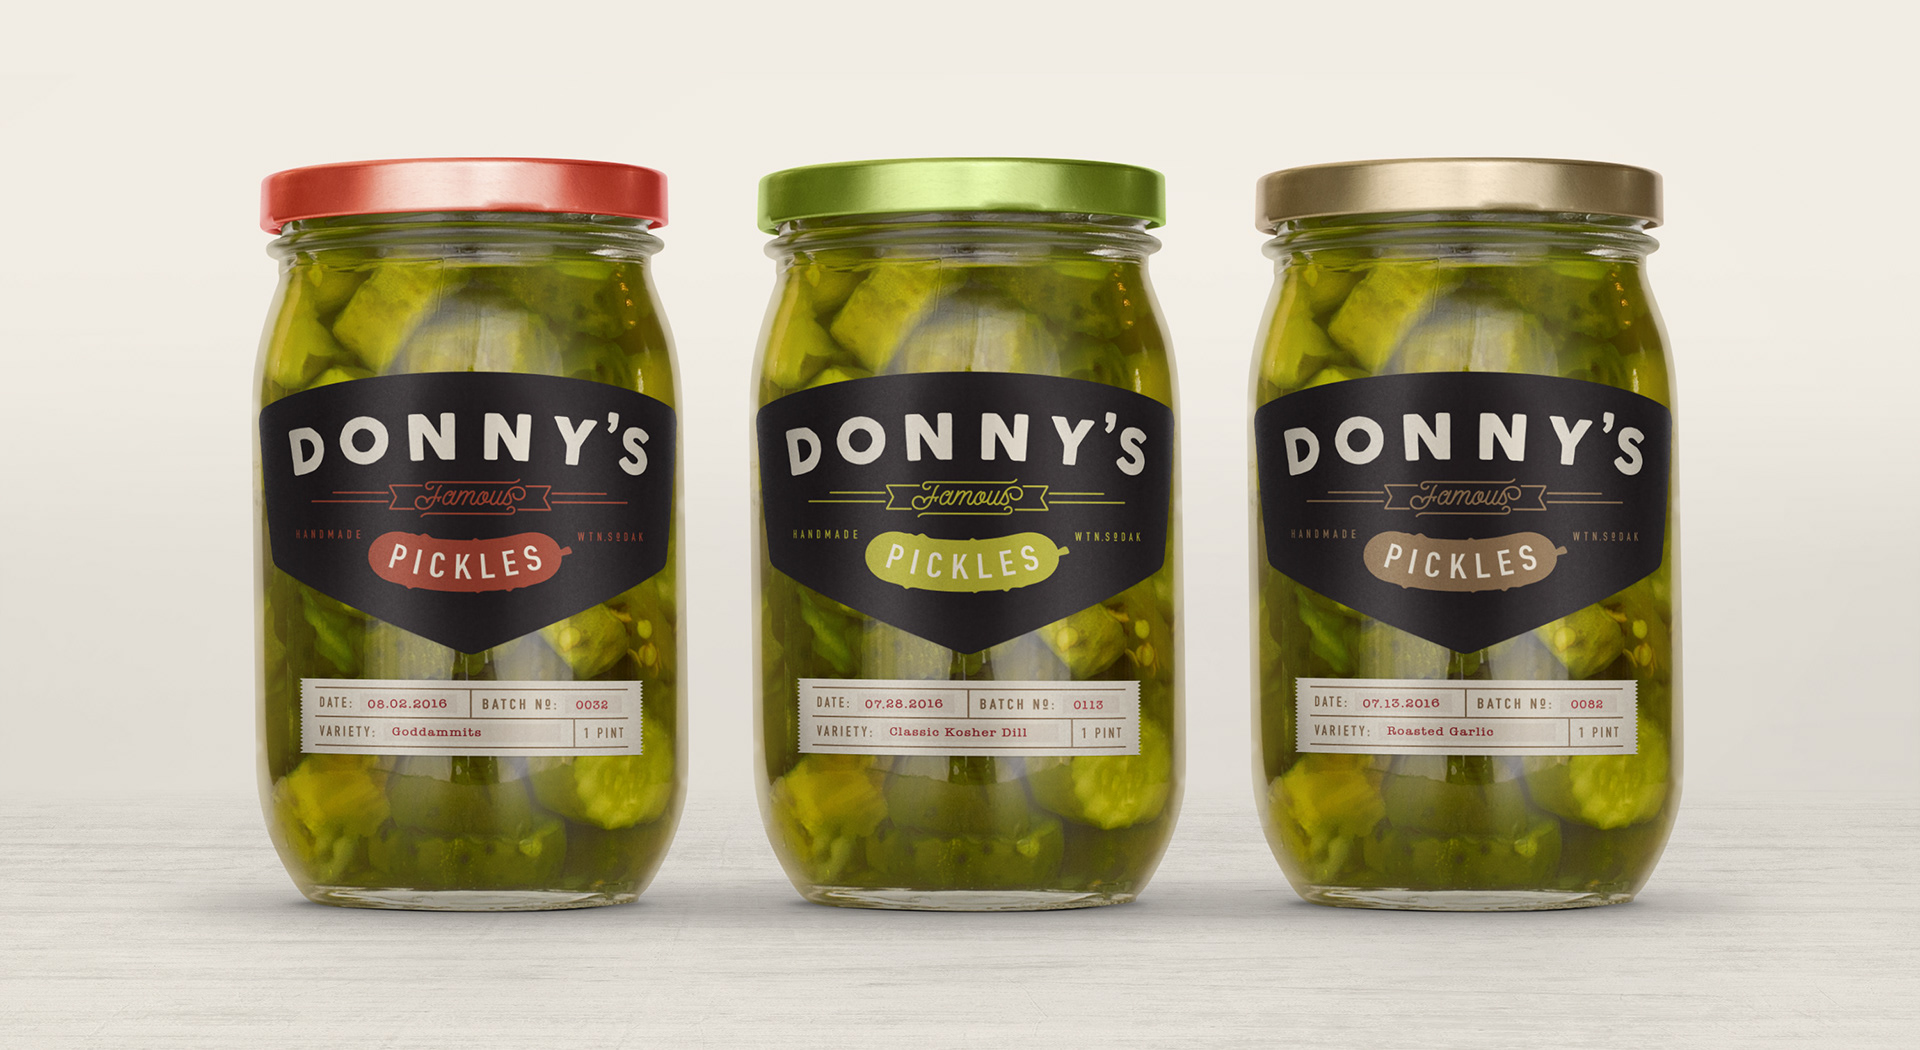 Donnys Famous Pickles